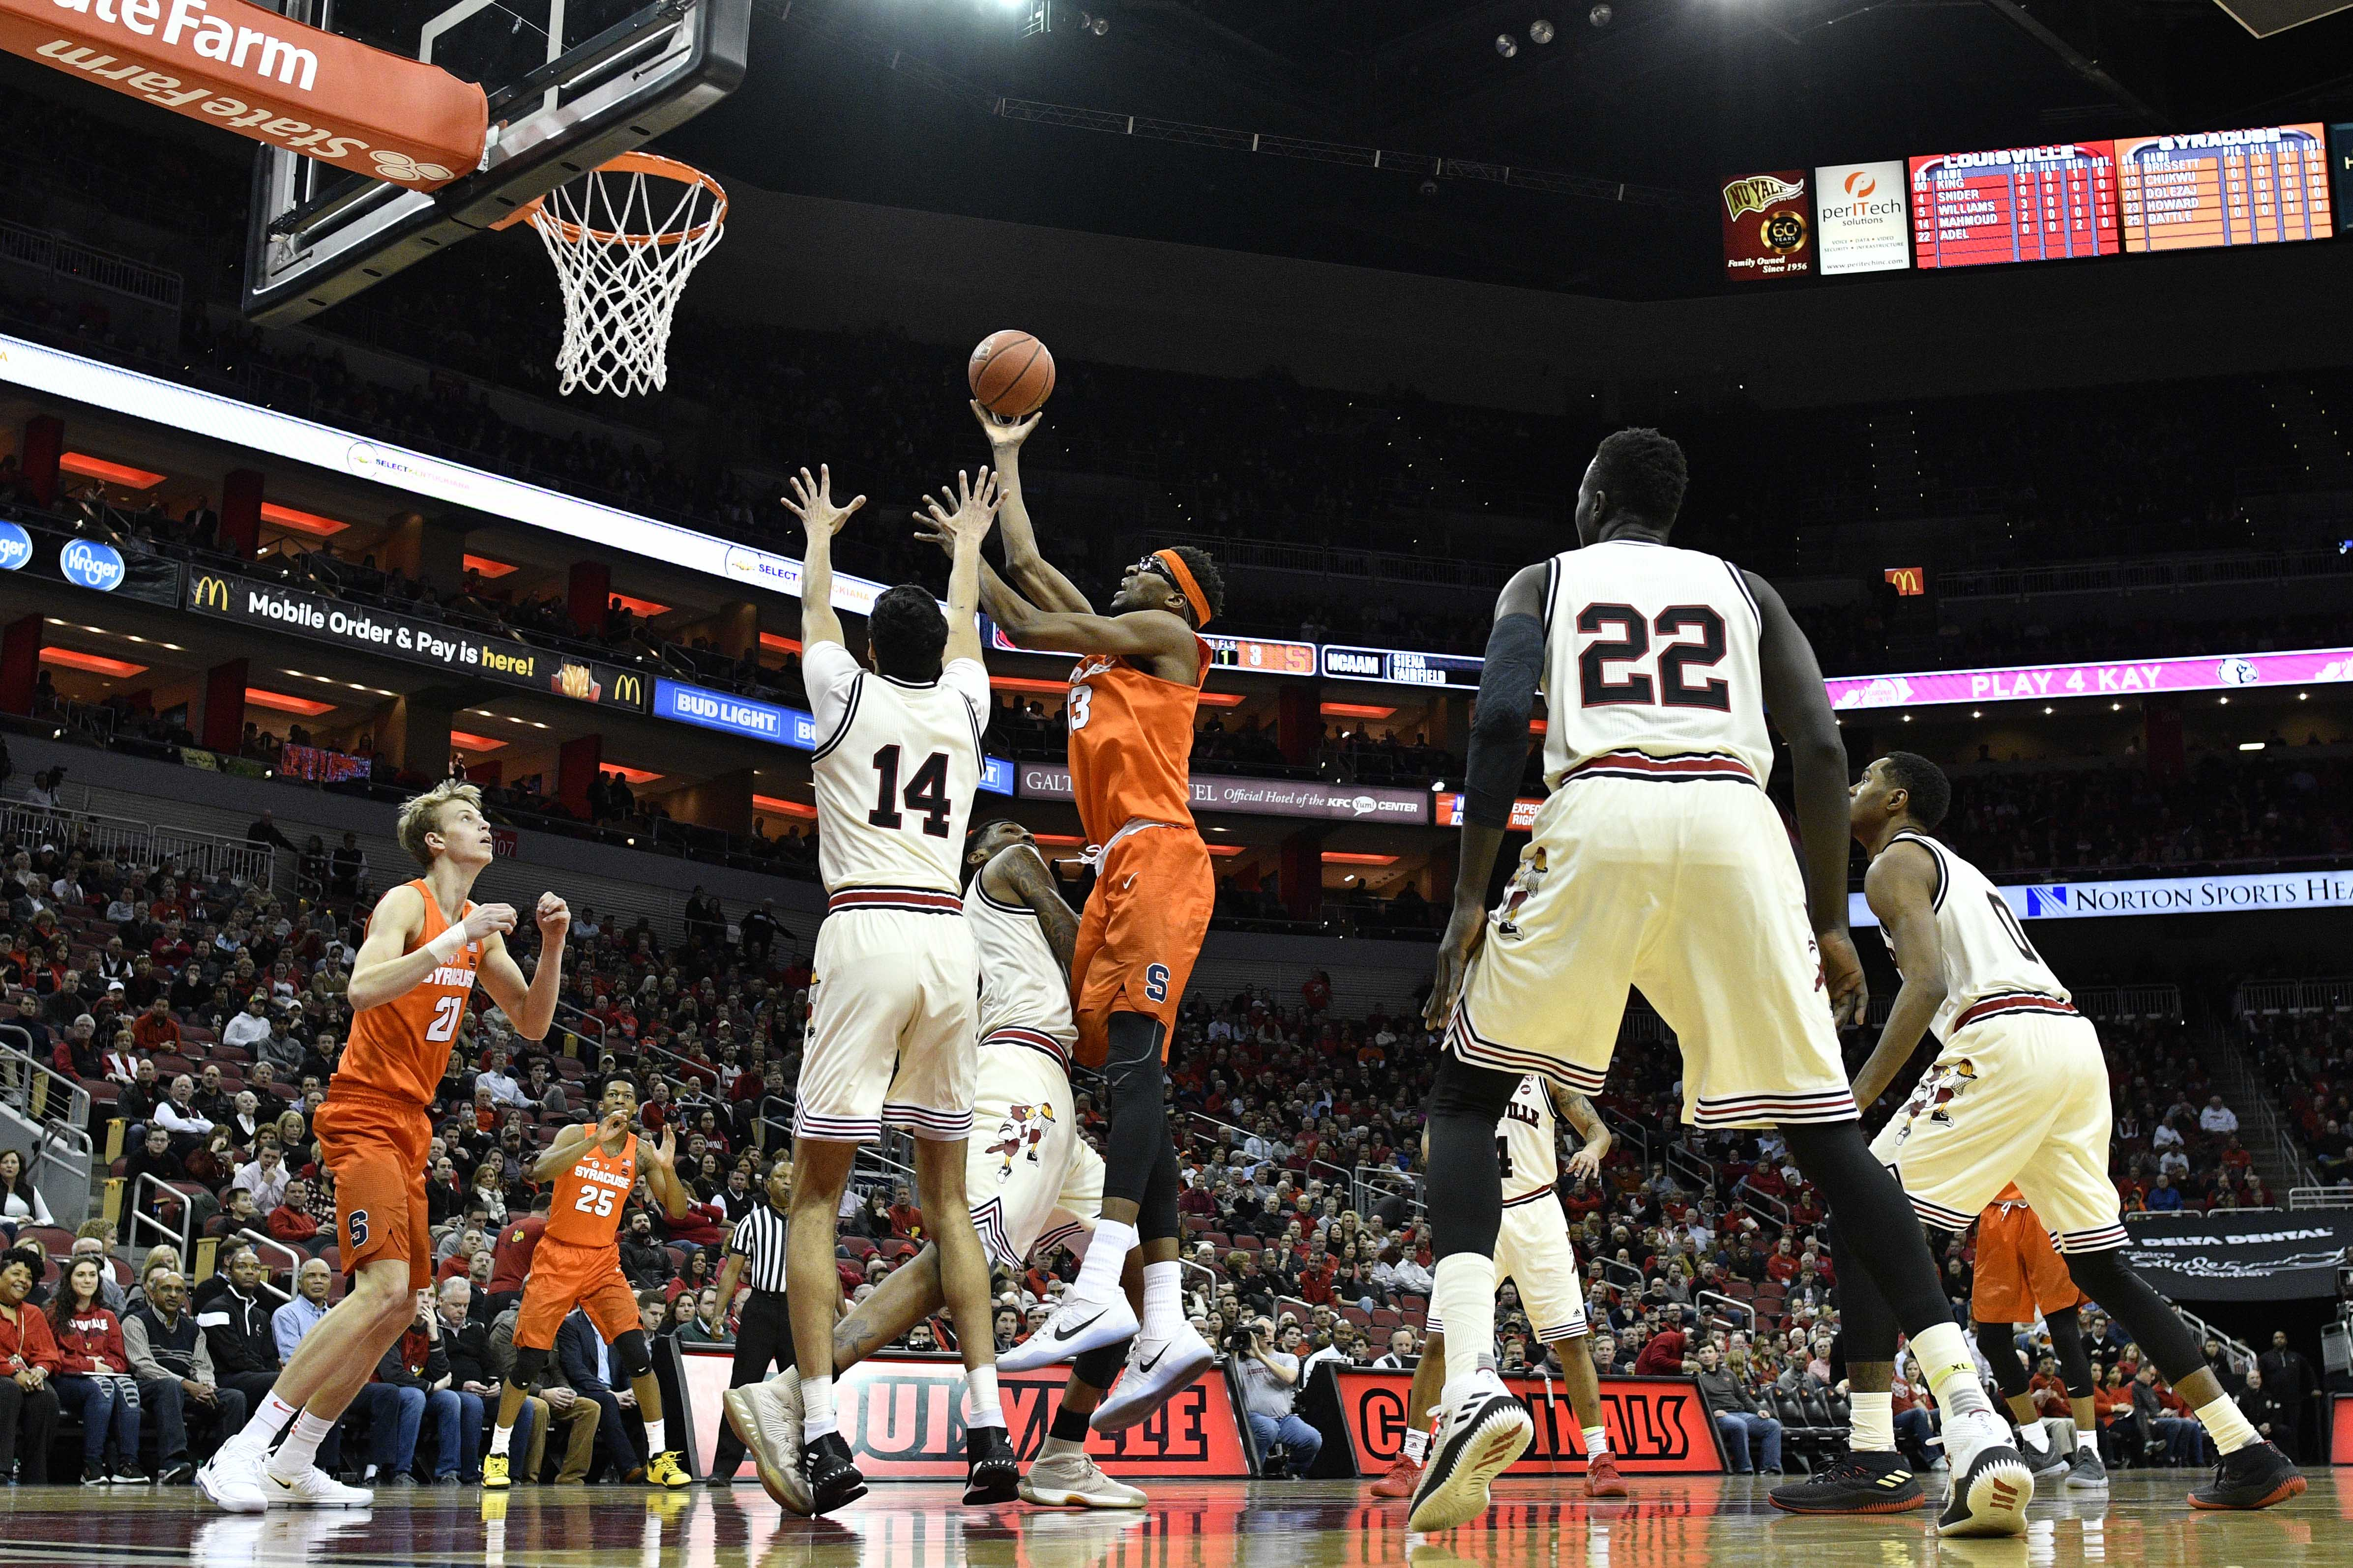 Is Syracuse A More Deserving Ncaa Tournament Team Than Louisville